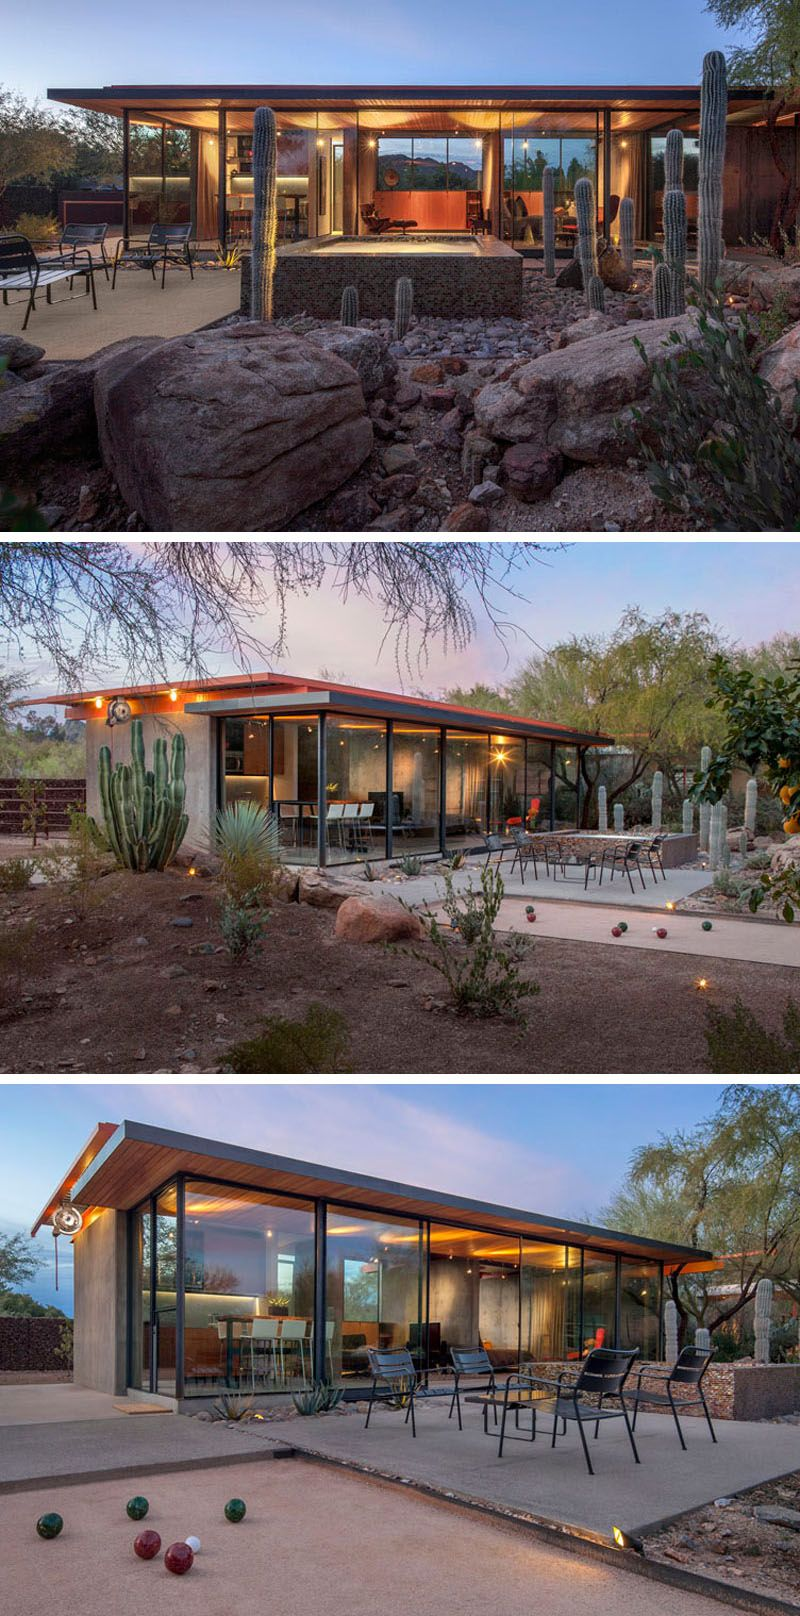 The construction zone have taken what was once a horse barn in phoenix arizona and transformed it into a modern guest house with plenty of glass